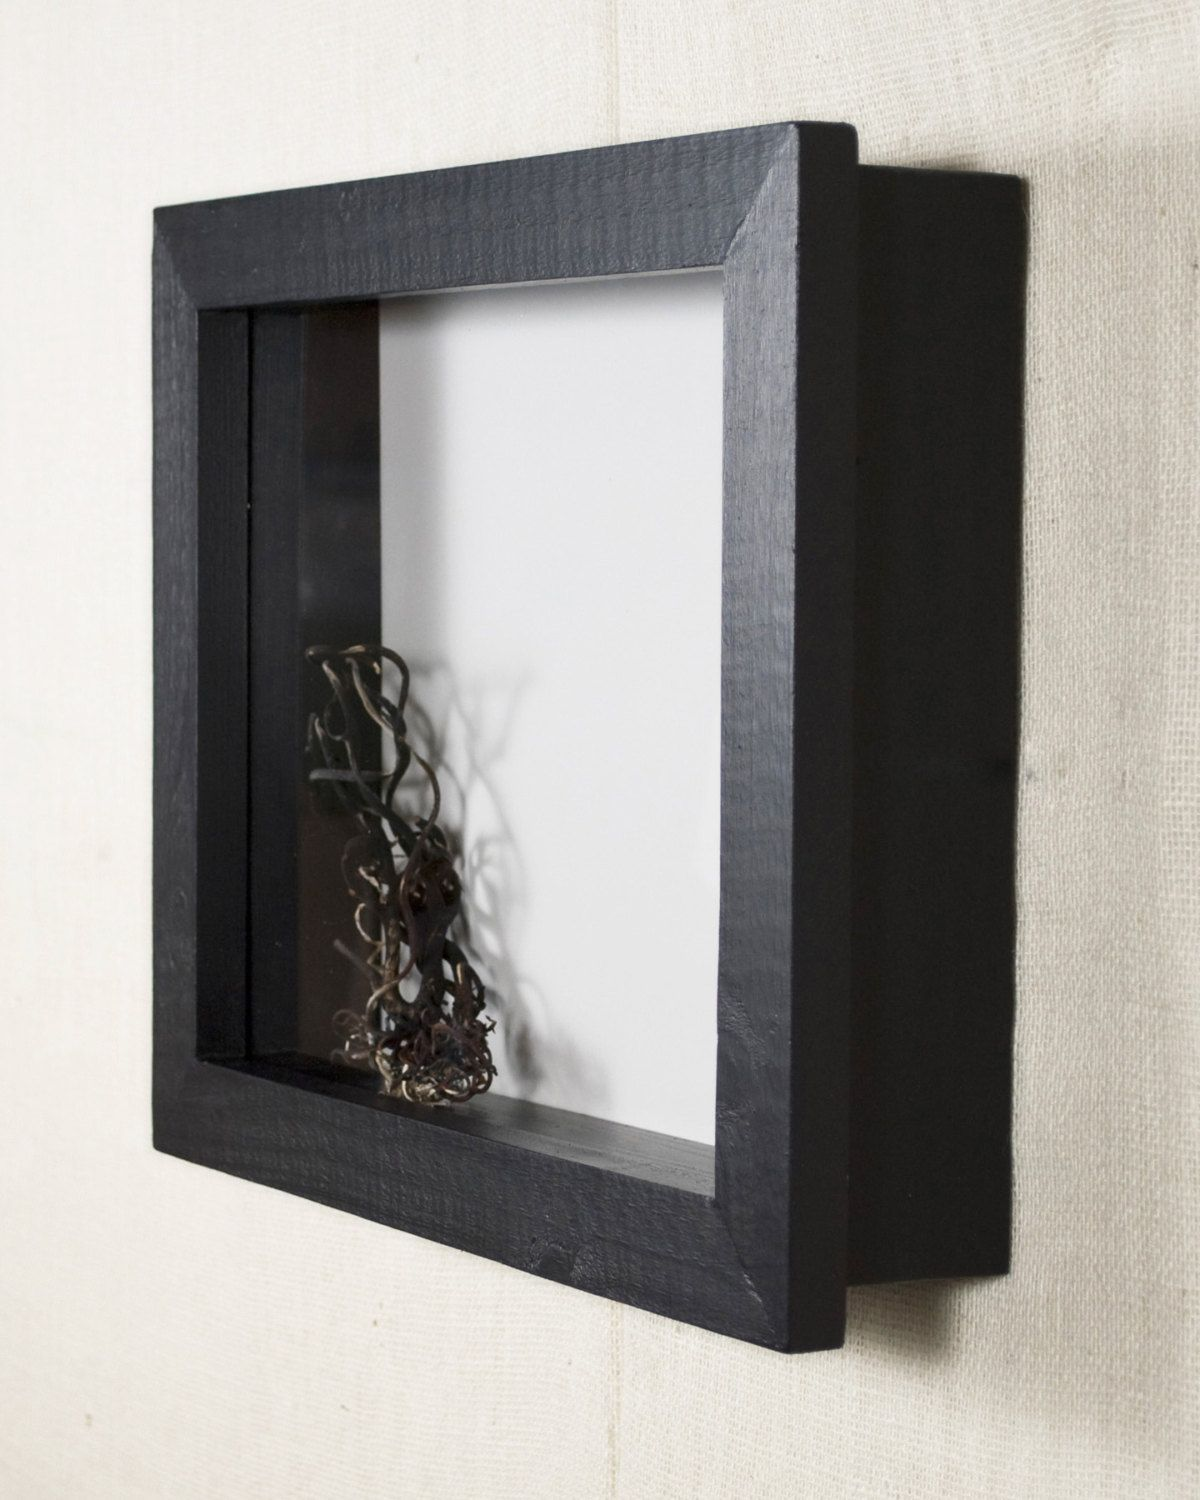 Best Shadow Box Ideas Pictures, Decor, and Remodel